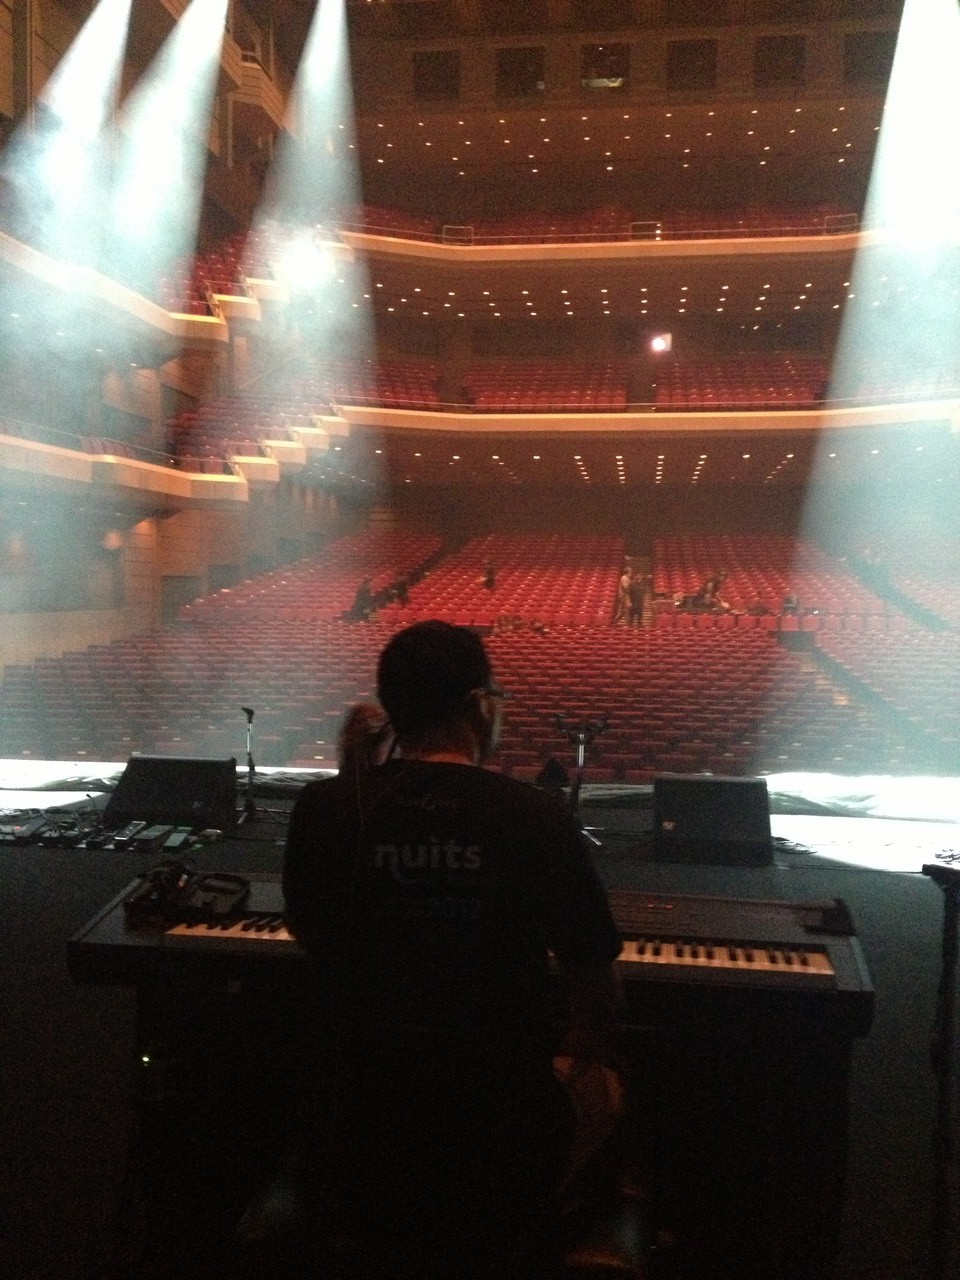 I check my piano and Kris checks his lights ... — at Orchard Hall Shibuya.